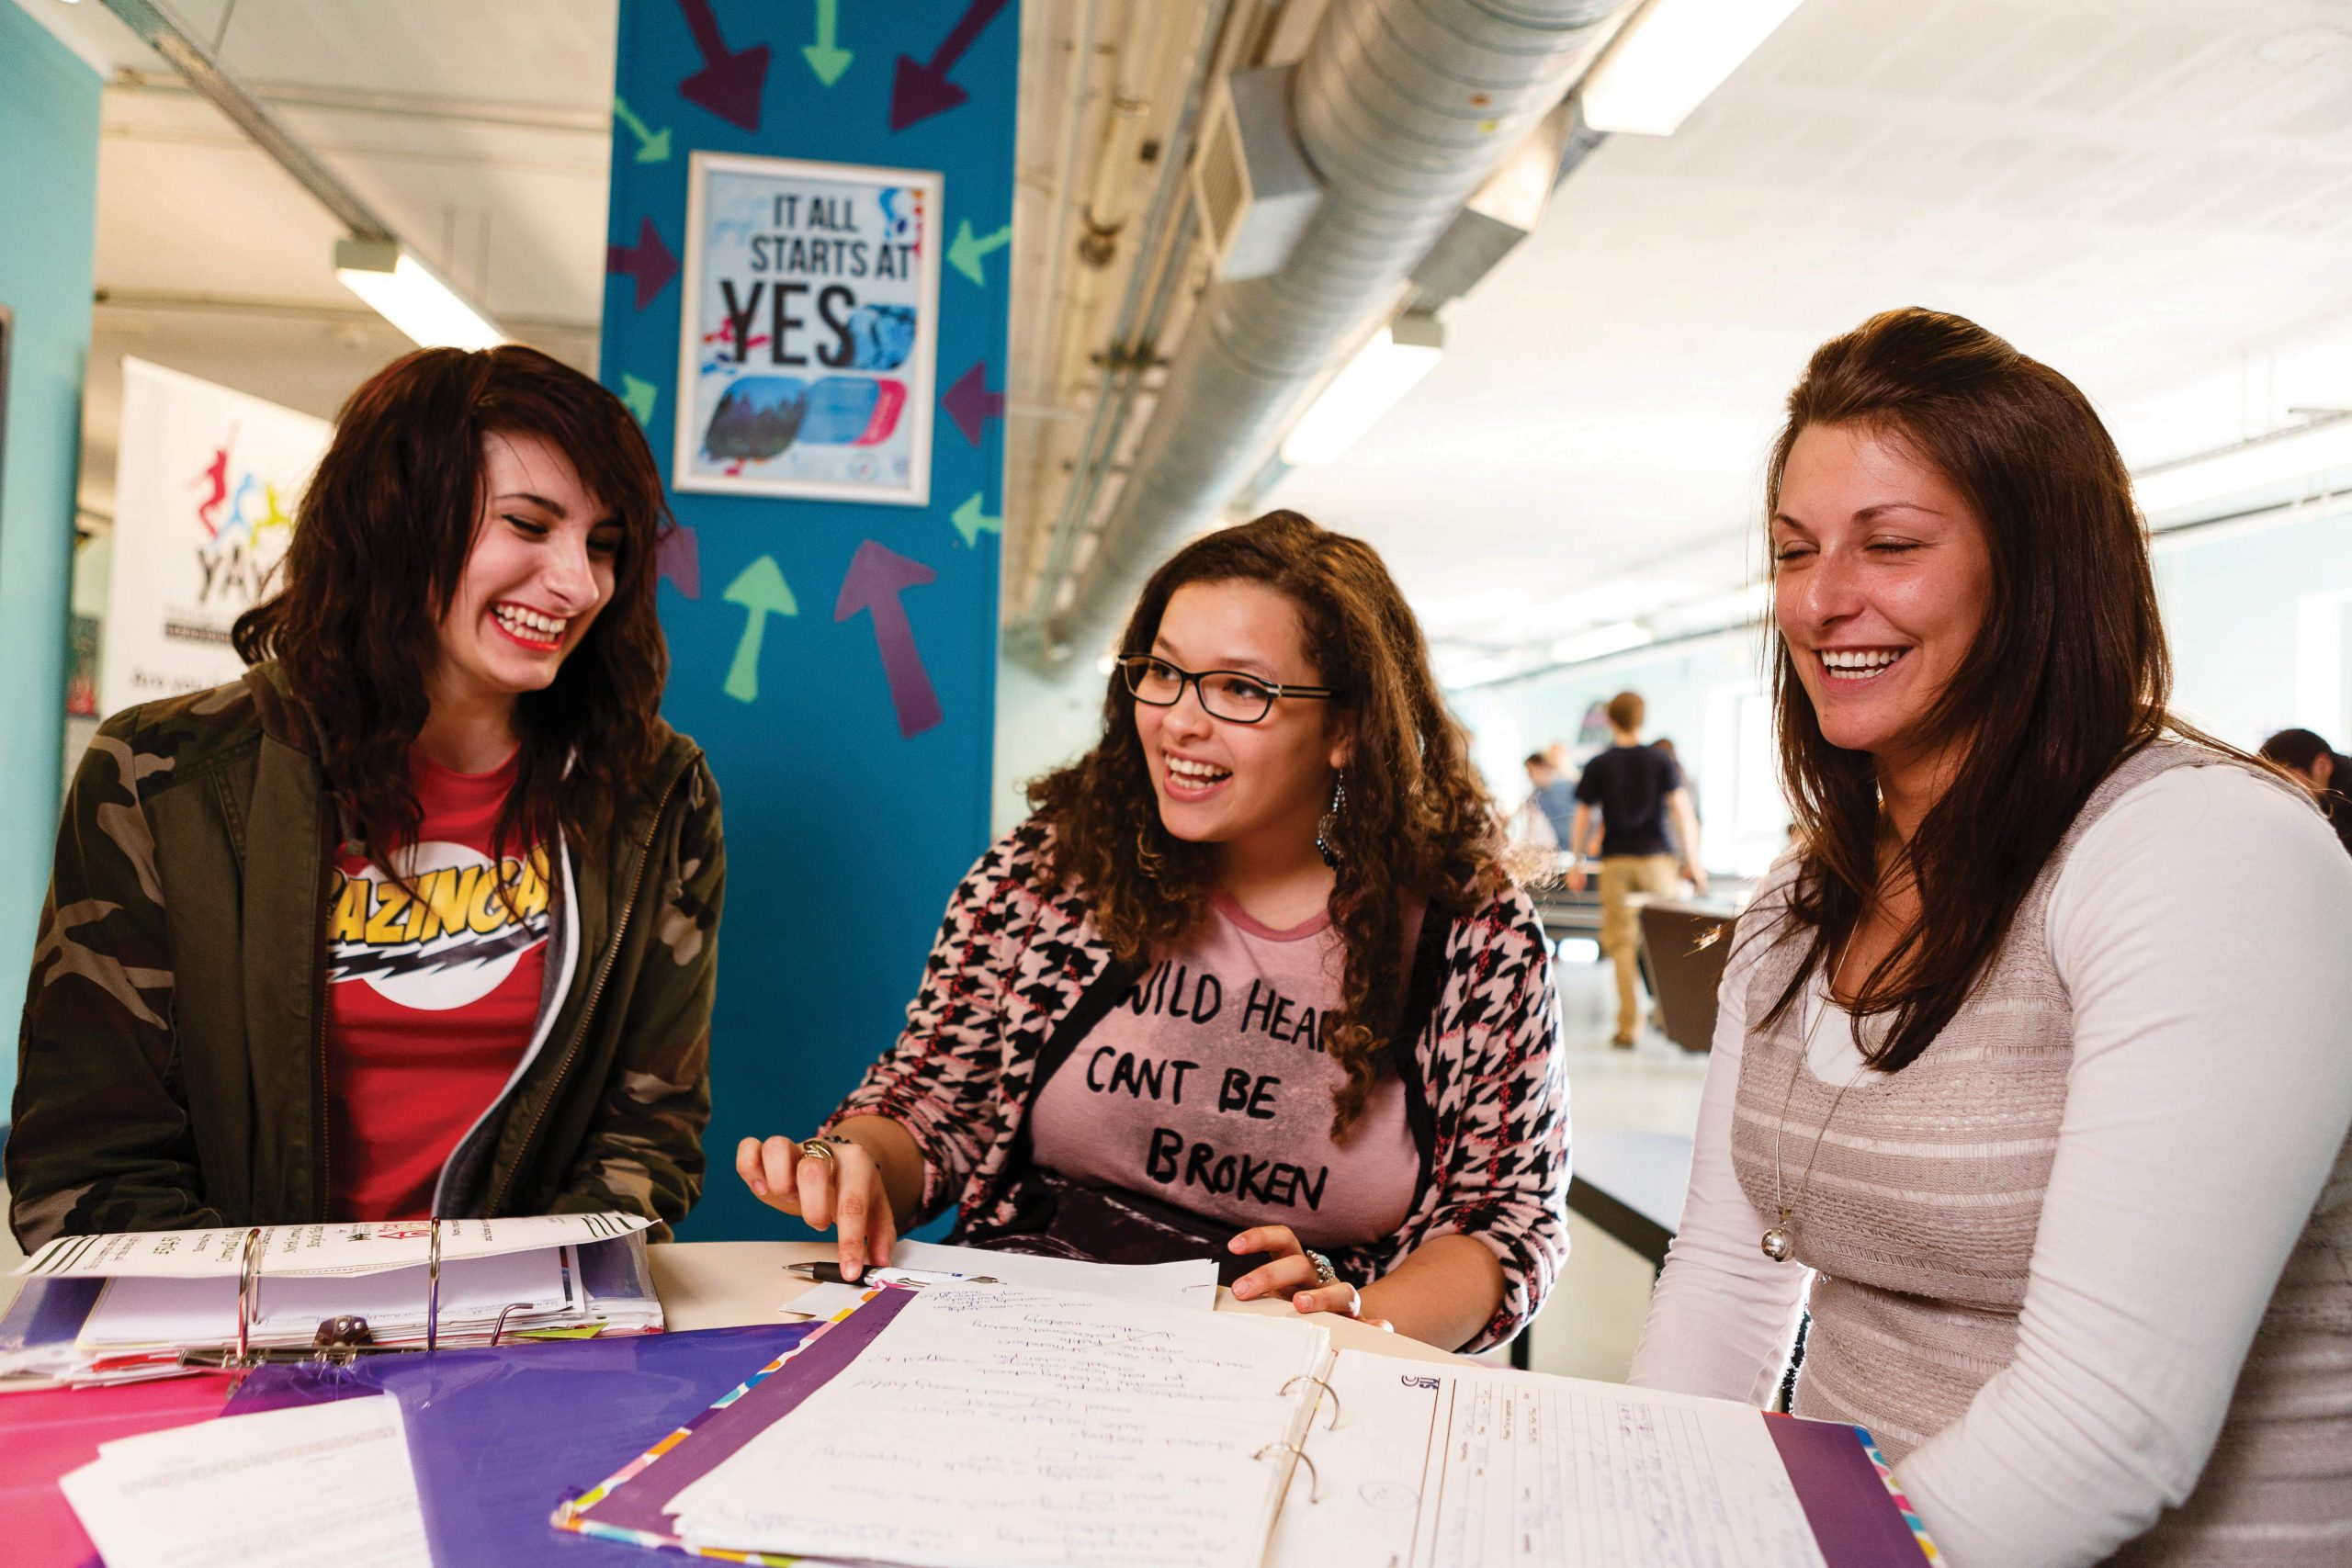 Three students having a chat at the Student Union at St Austell campus